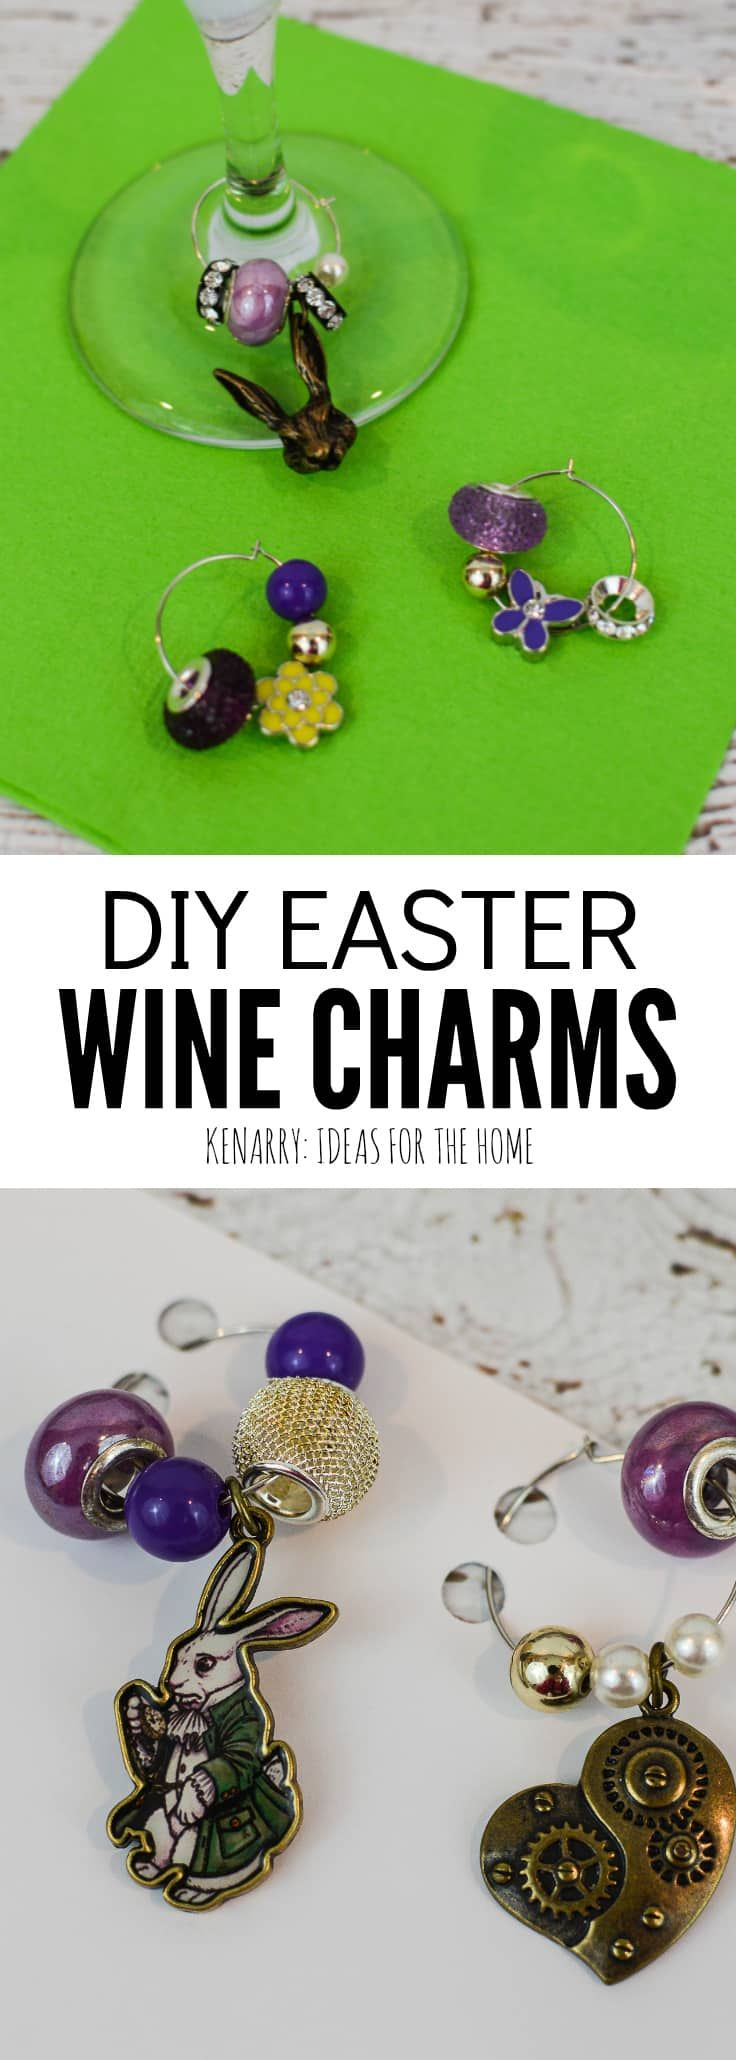 Easter wine charms easy craft idea for diy gift super easy learn how to make easter wine charms as a diy gift for friends and neighbors negle Choice Image